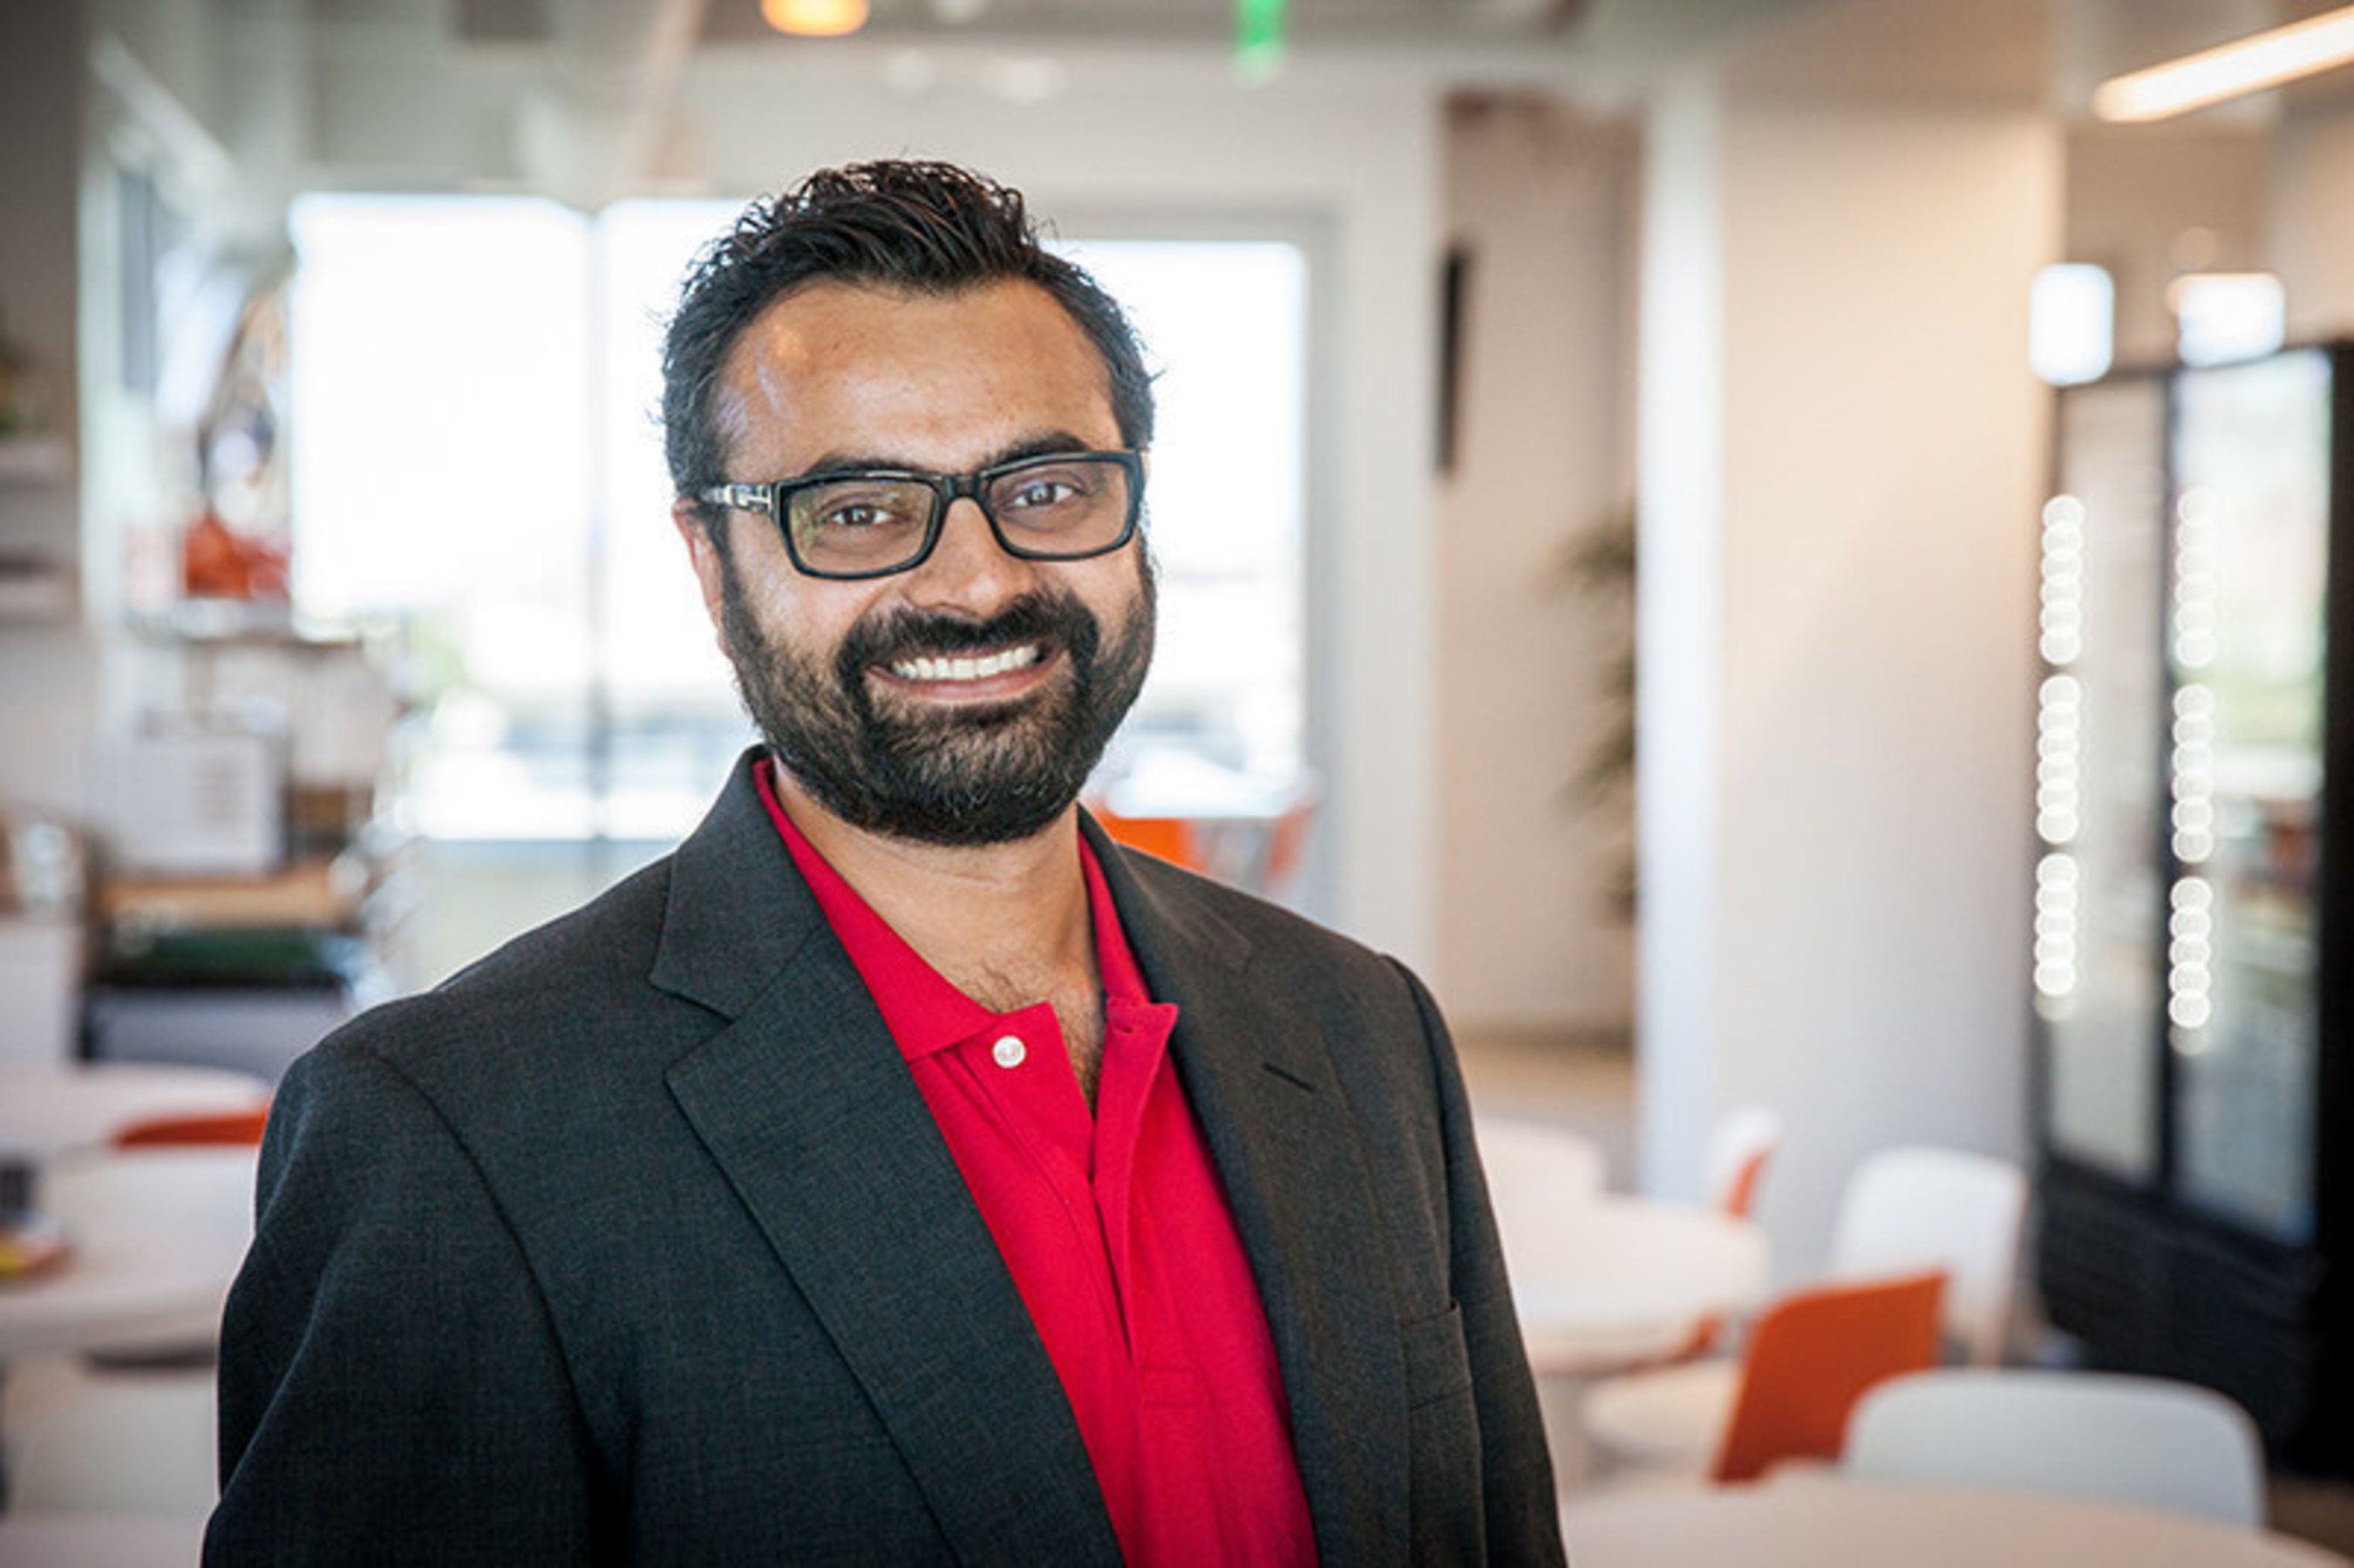 Vik Nagjee, VP and CTO of Global Healthcare Solutions, Pure Storage